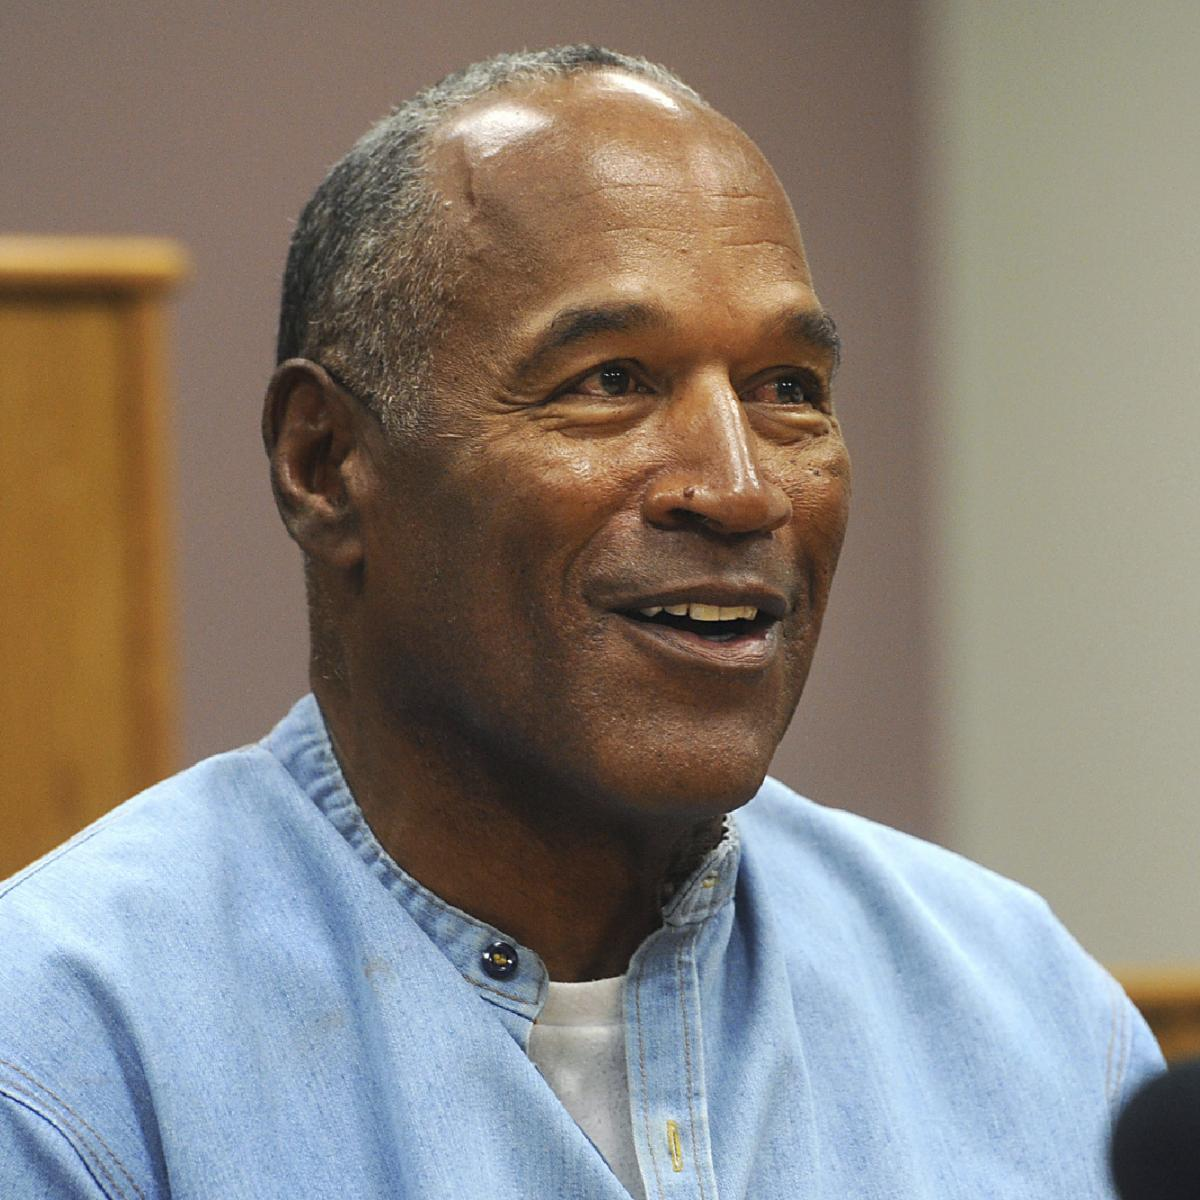 Video: OJ Simpson Laughs at 33-Year-Old Tim Tebow Playing TE, Says 'Good Luck'